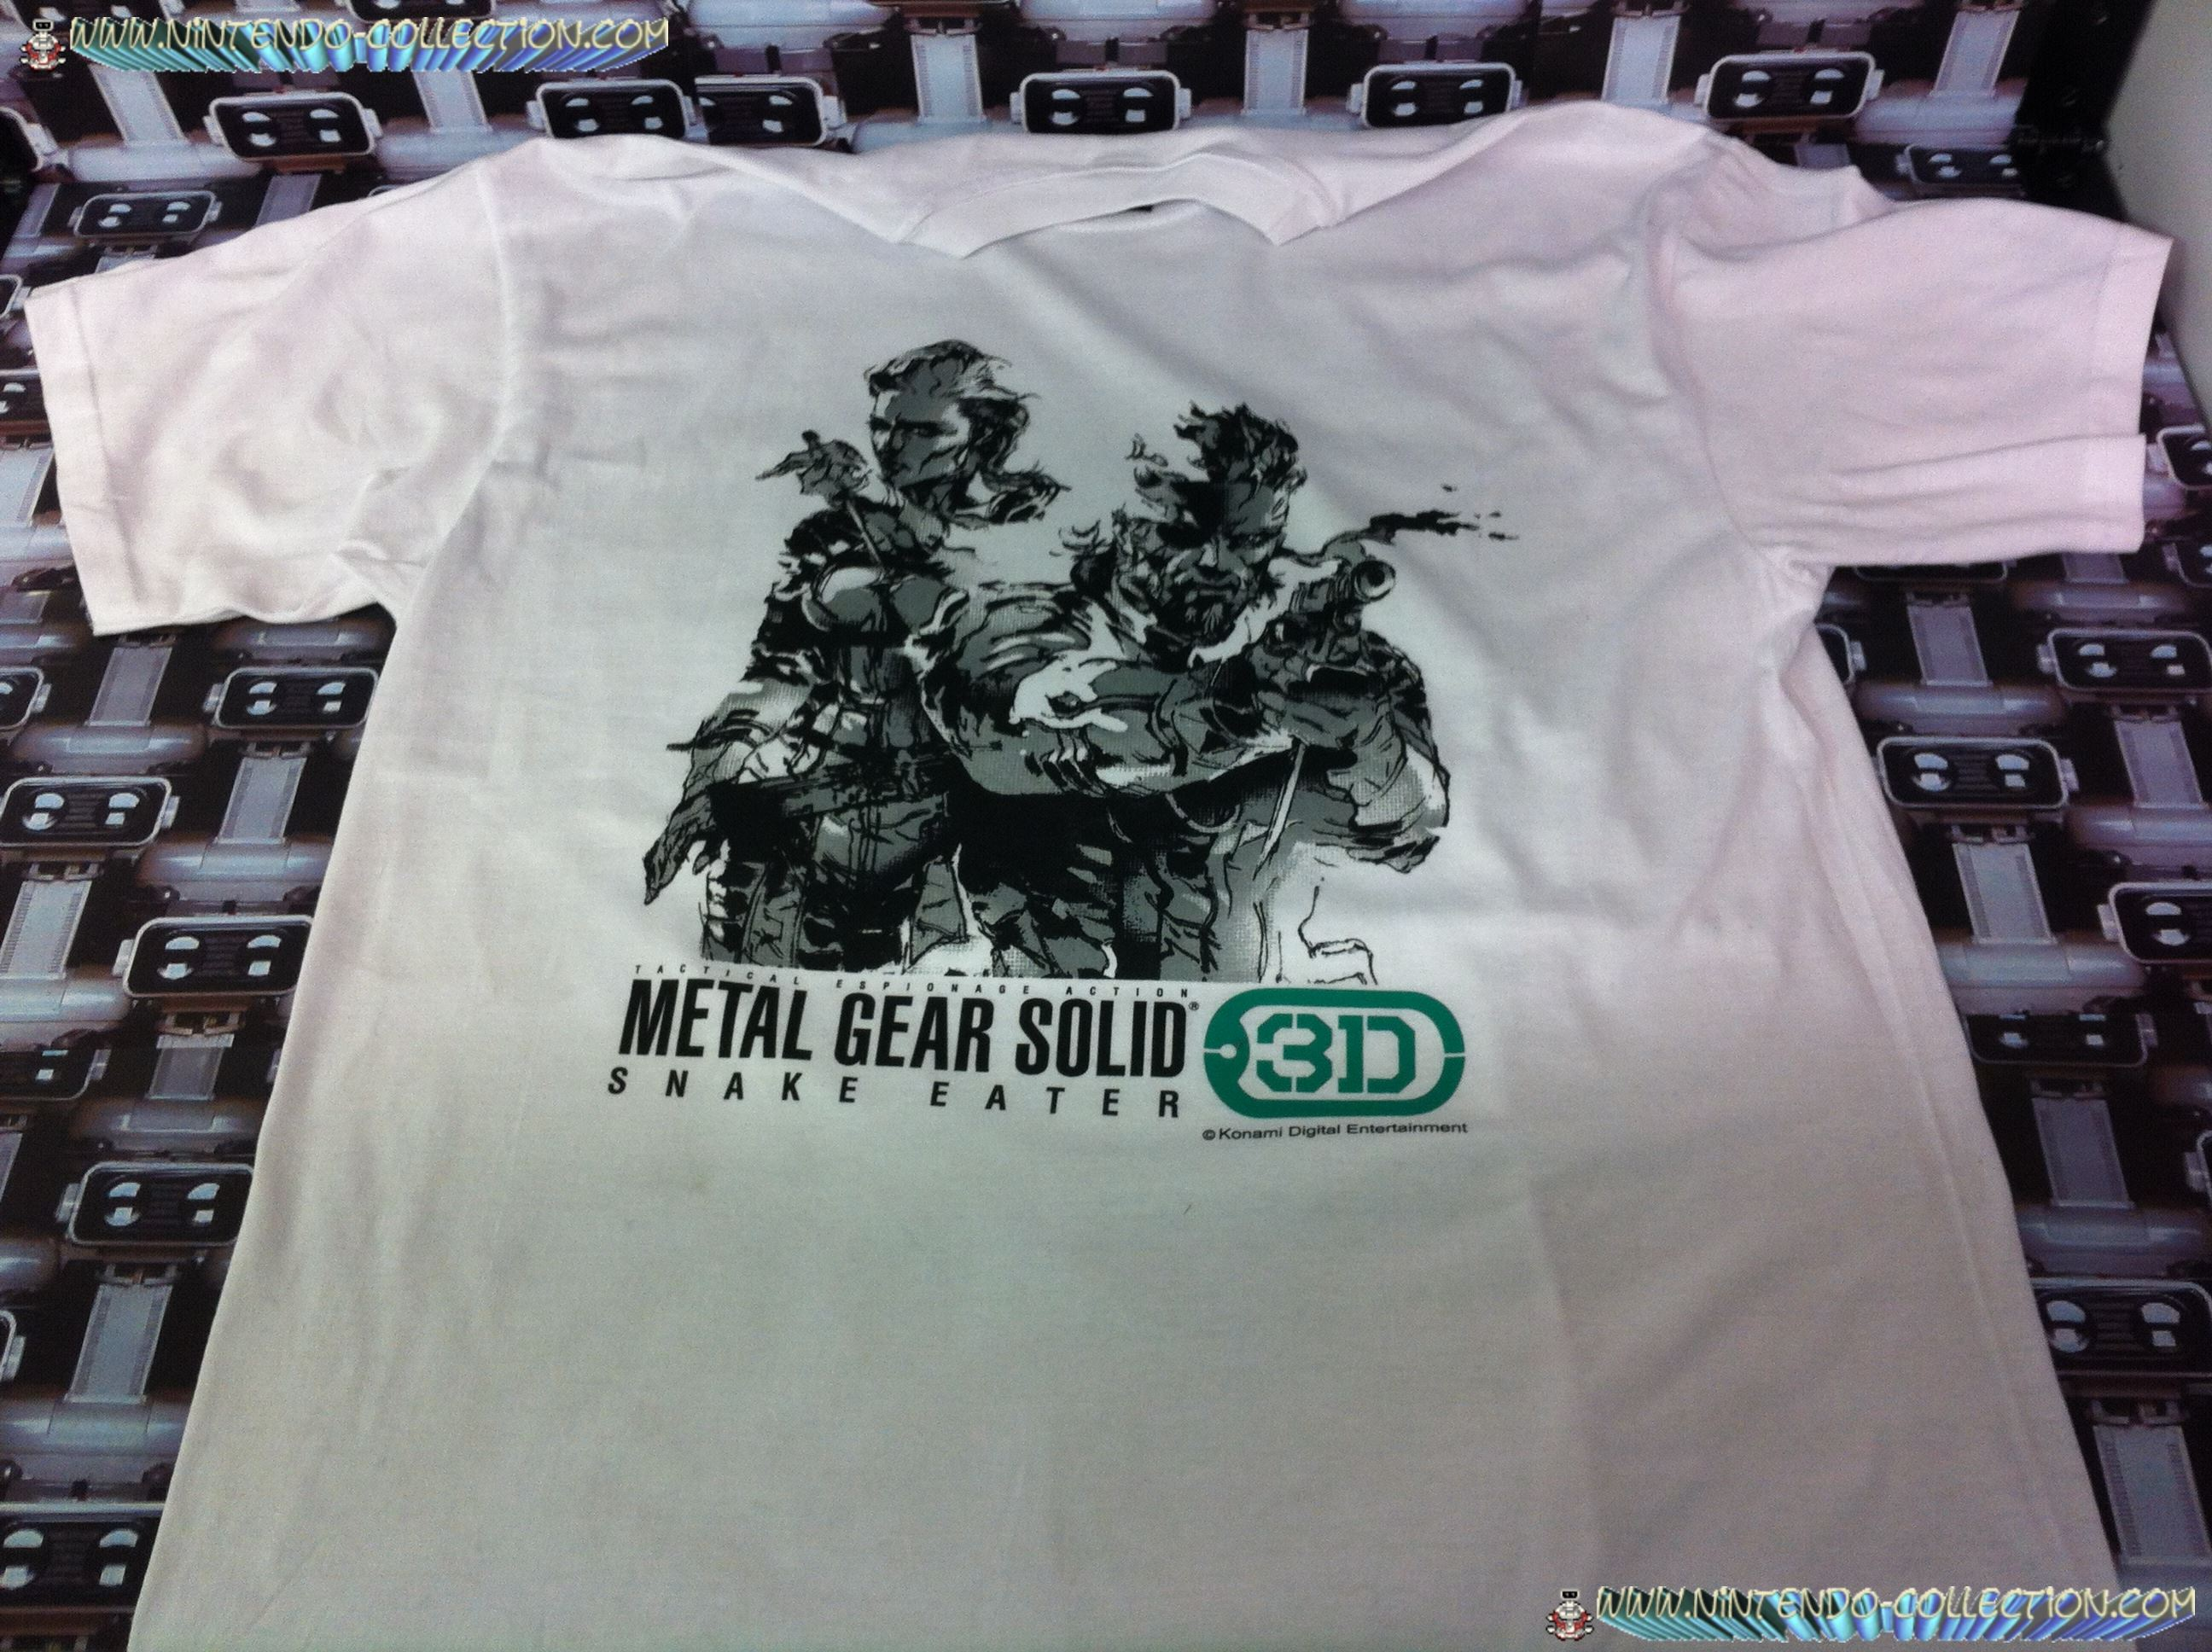 www.nintendo-collection.com - Tee-Shirt de pre-reservation de Metal Gear Solid Snake Eater 3D - Nor